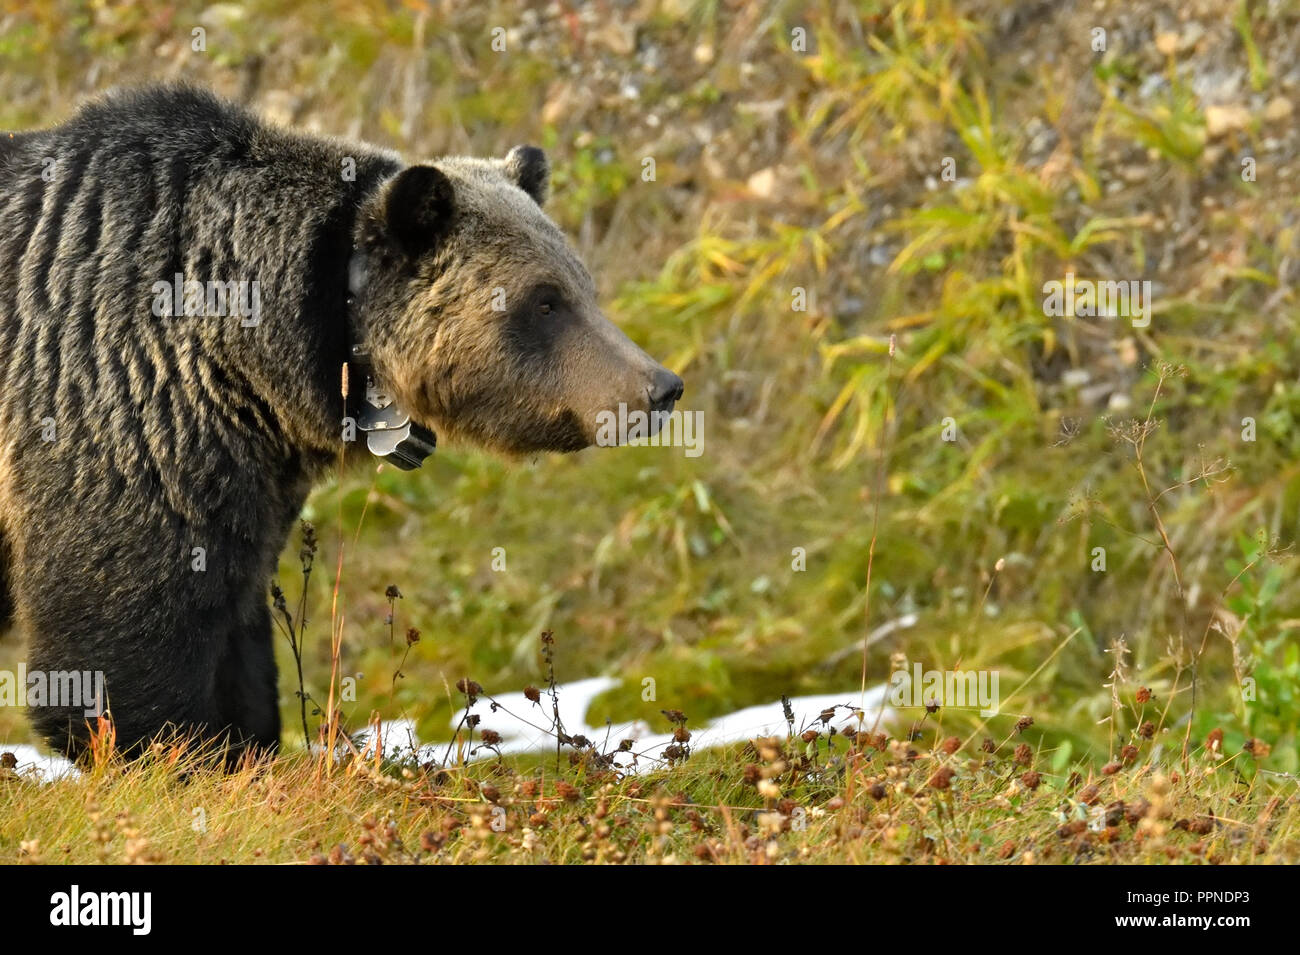 A side view of a wild grizzly bear coming into the frame showing the tracking collar and leaving space to apply copy taken in rural Alberta Canada. - Stock Image